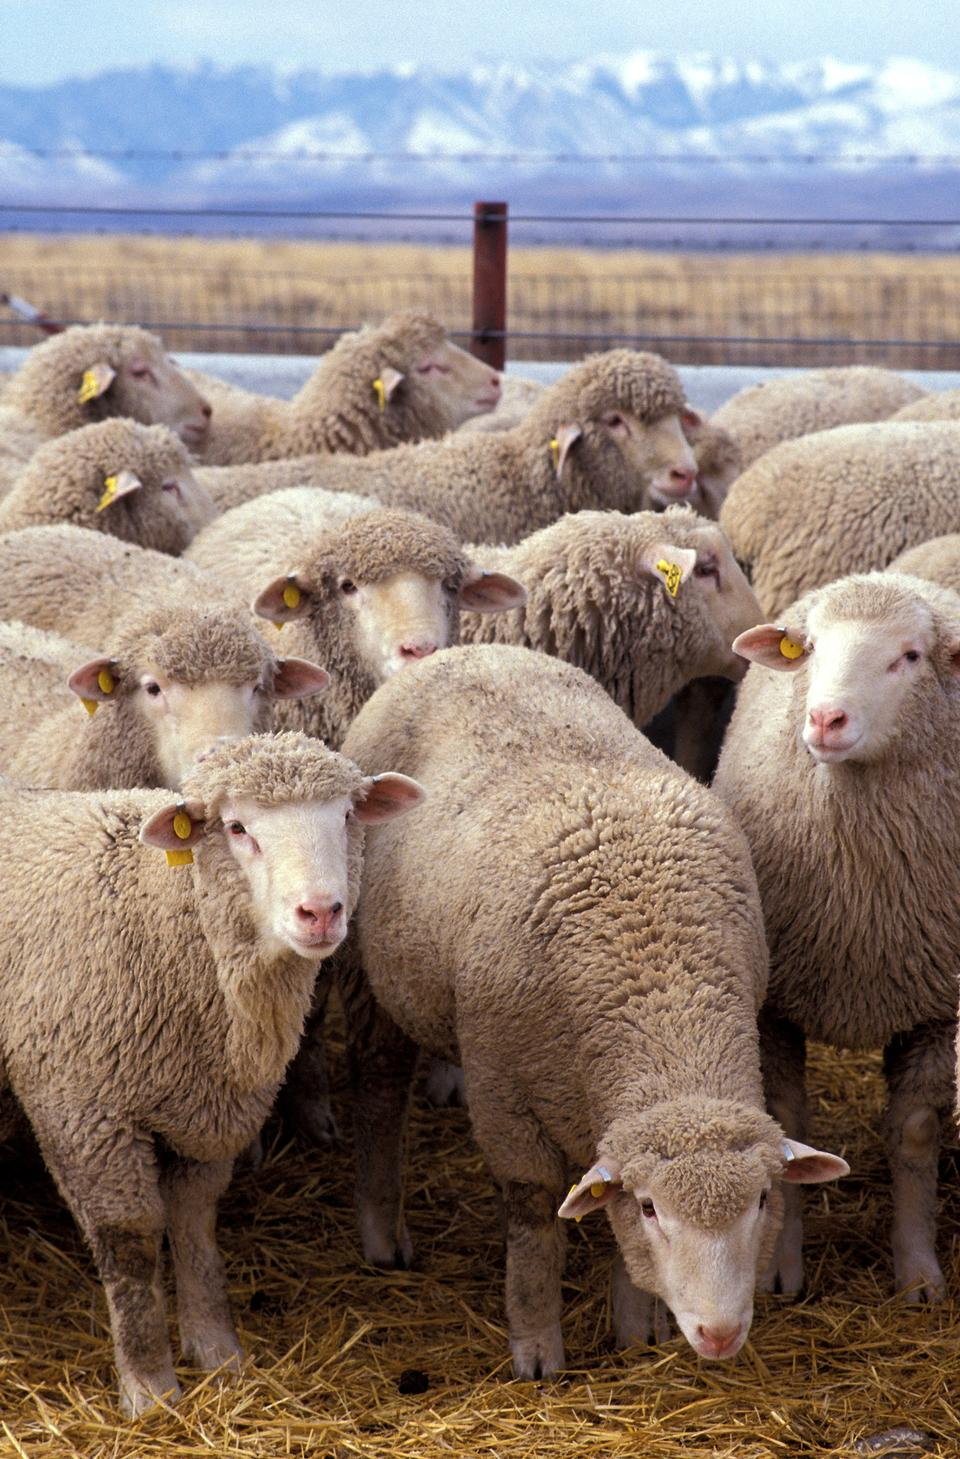 Free Livestock farm, herd of sheep